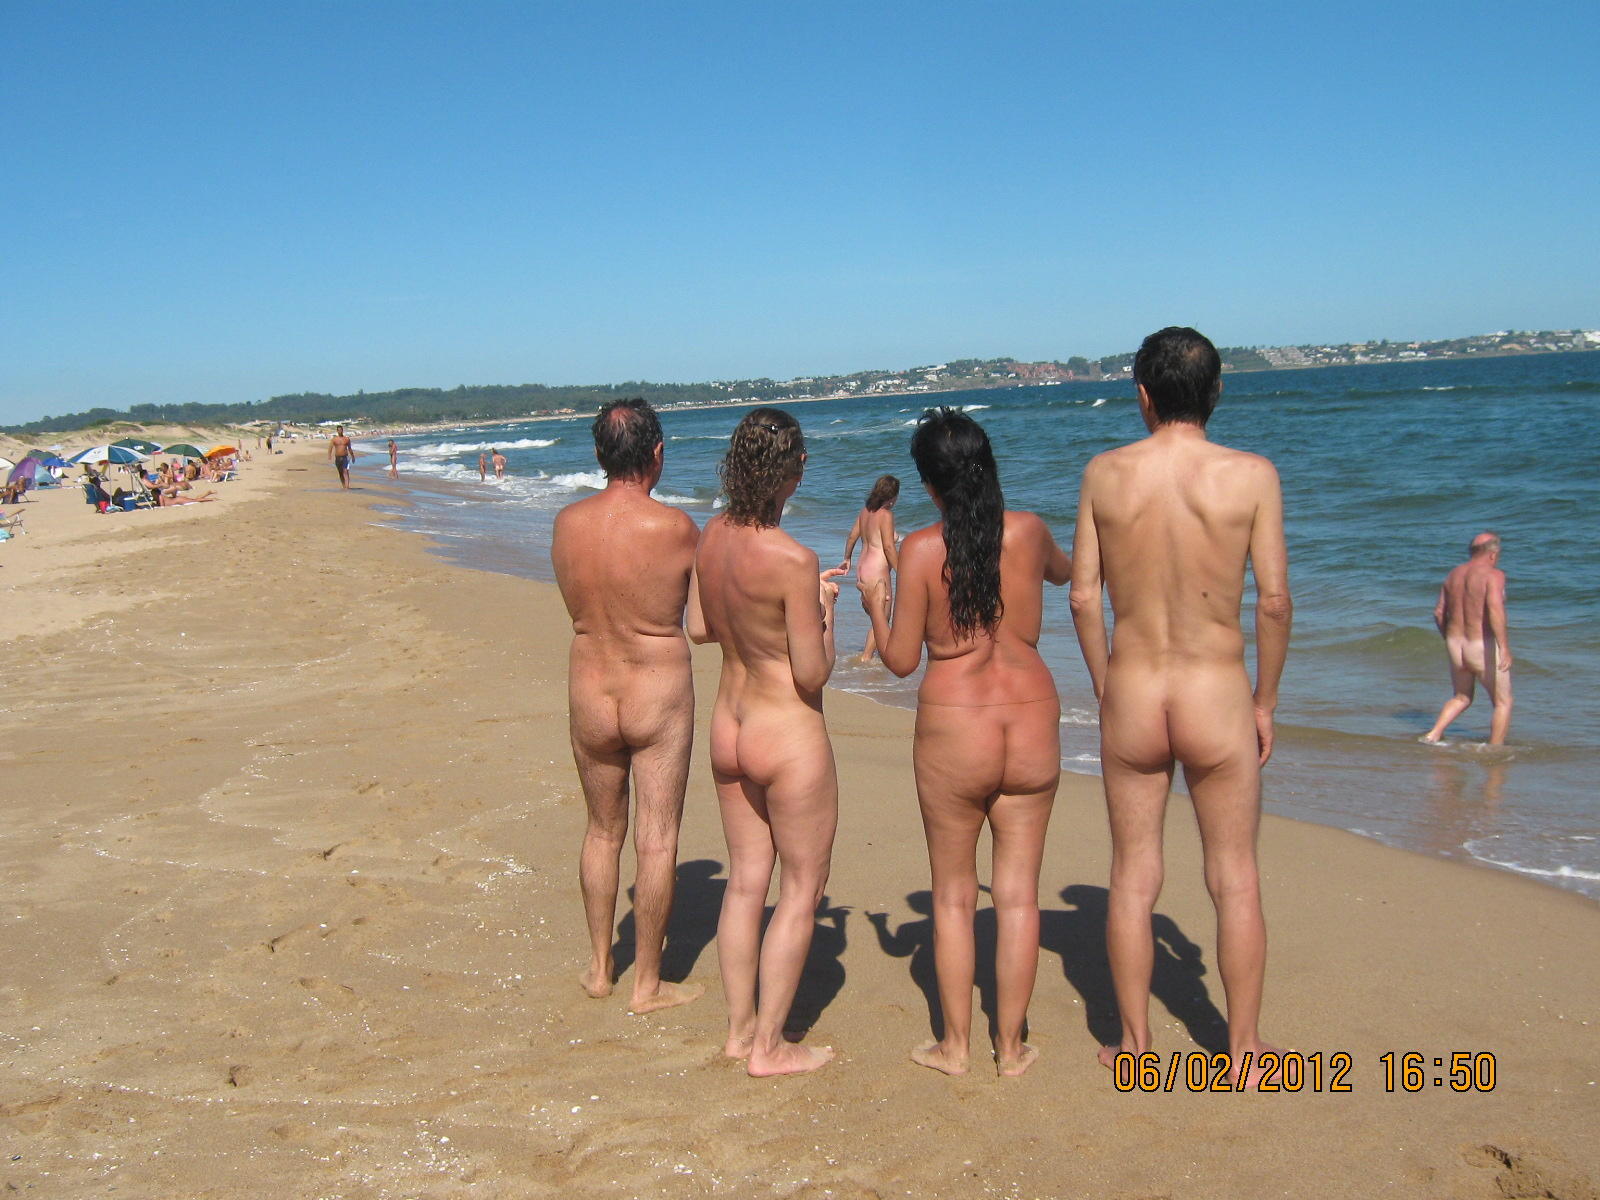 Nudist holidays 2012 fuerteventura - 2 part 9